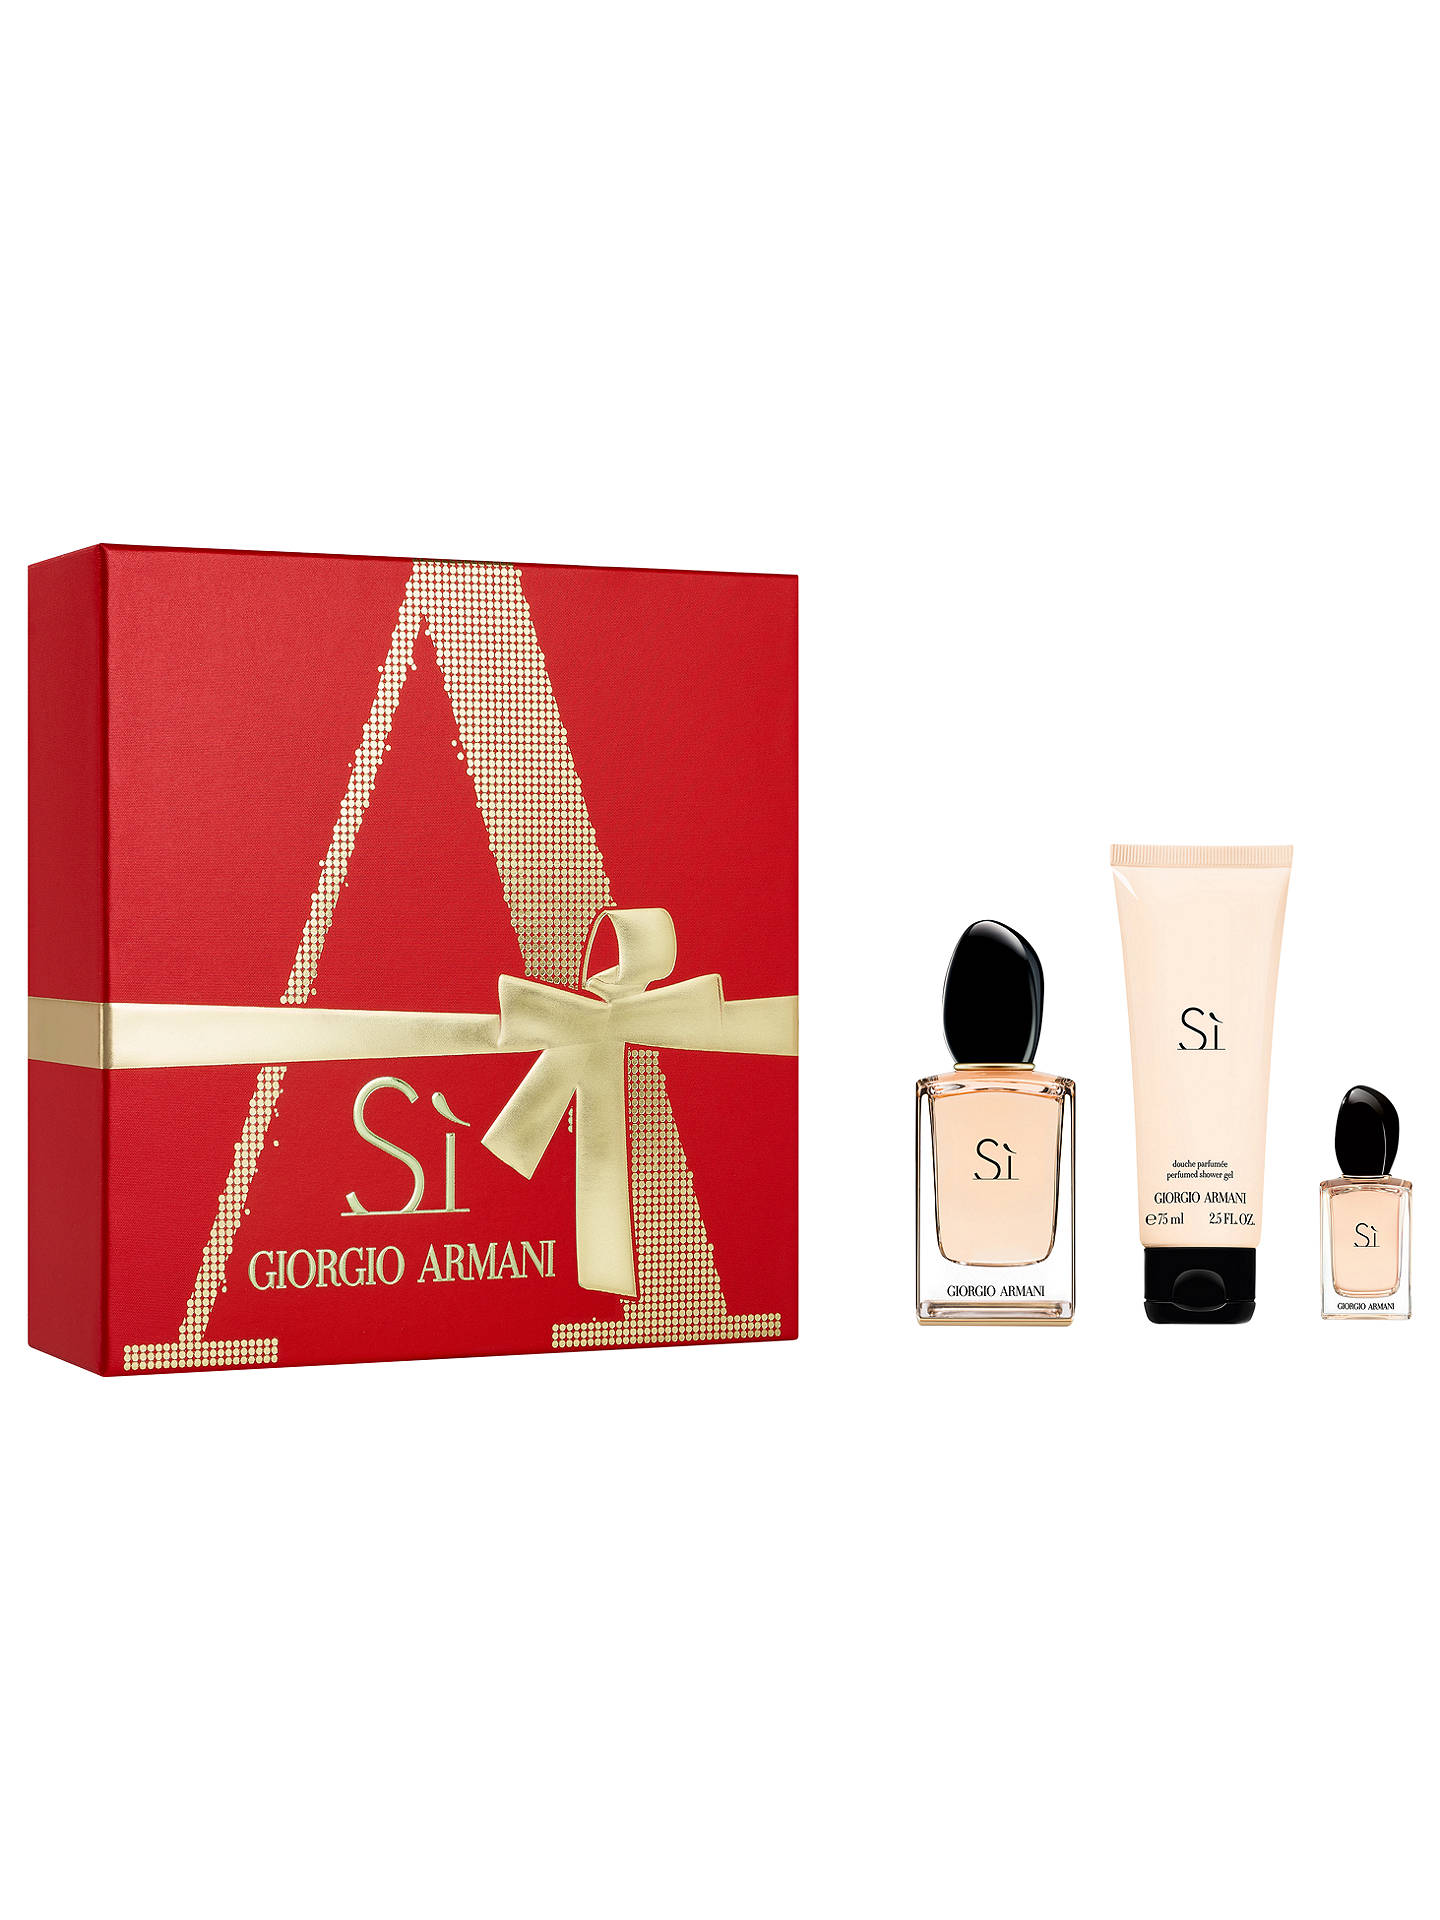 BuyGiorgio Armani Si 50ml Eau de Parfum Fragrance Gift Set Online at johnlewis.com